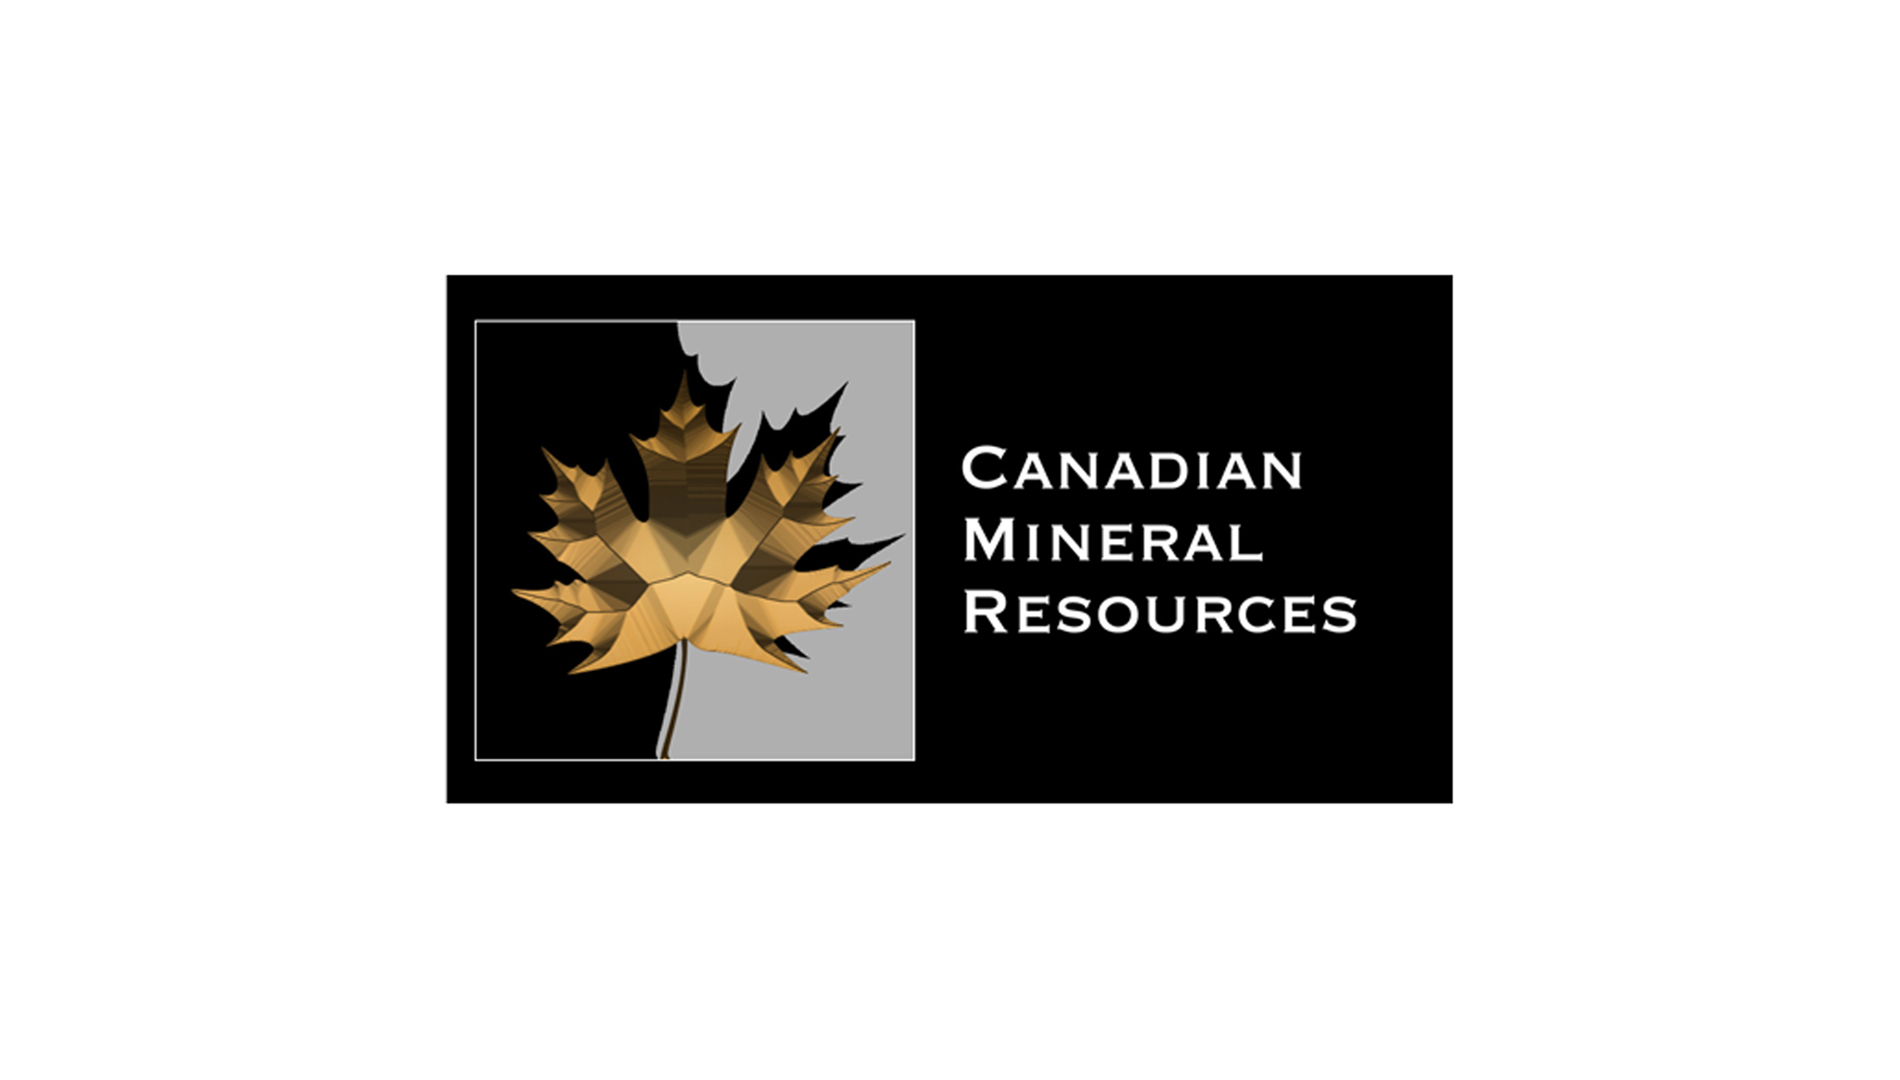 Canadian Mineral Resources Anwalt